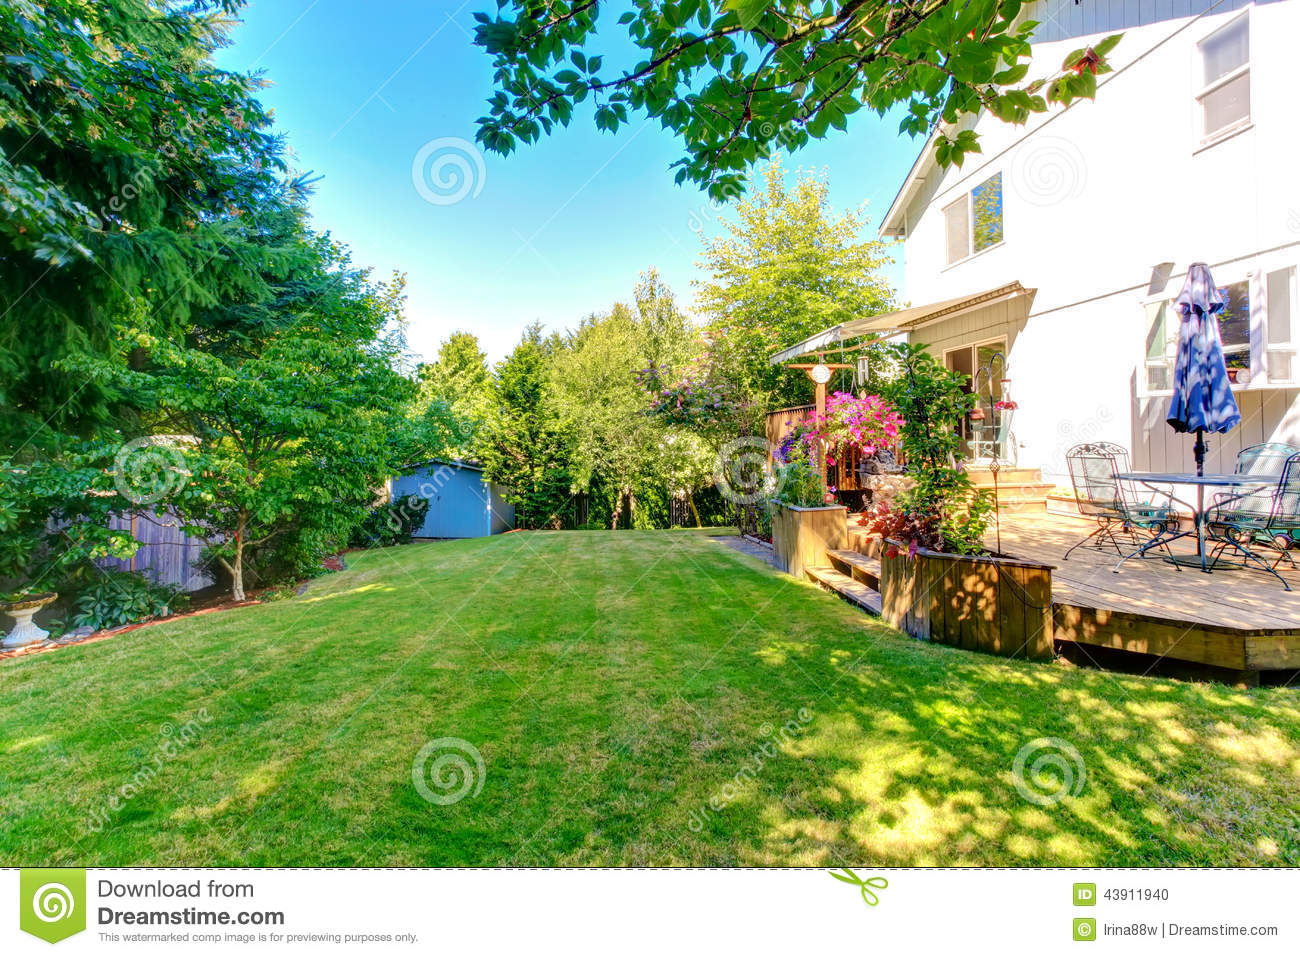 Download Walkout Deck With Patio Table And Umbrella Stock Photo   Image Of  Property, Lawn